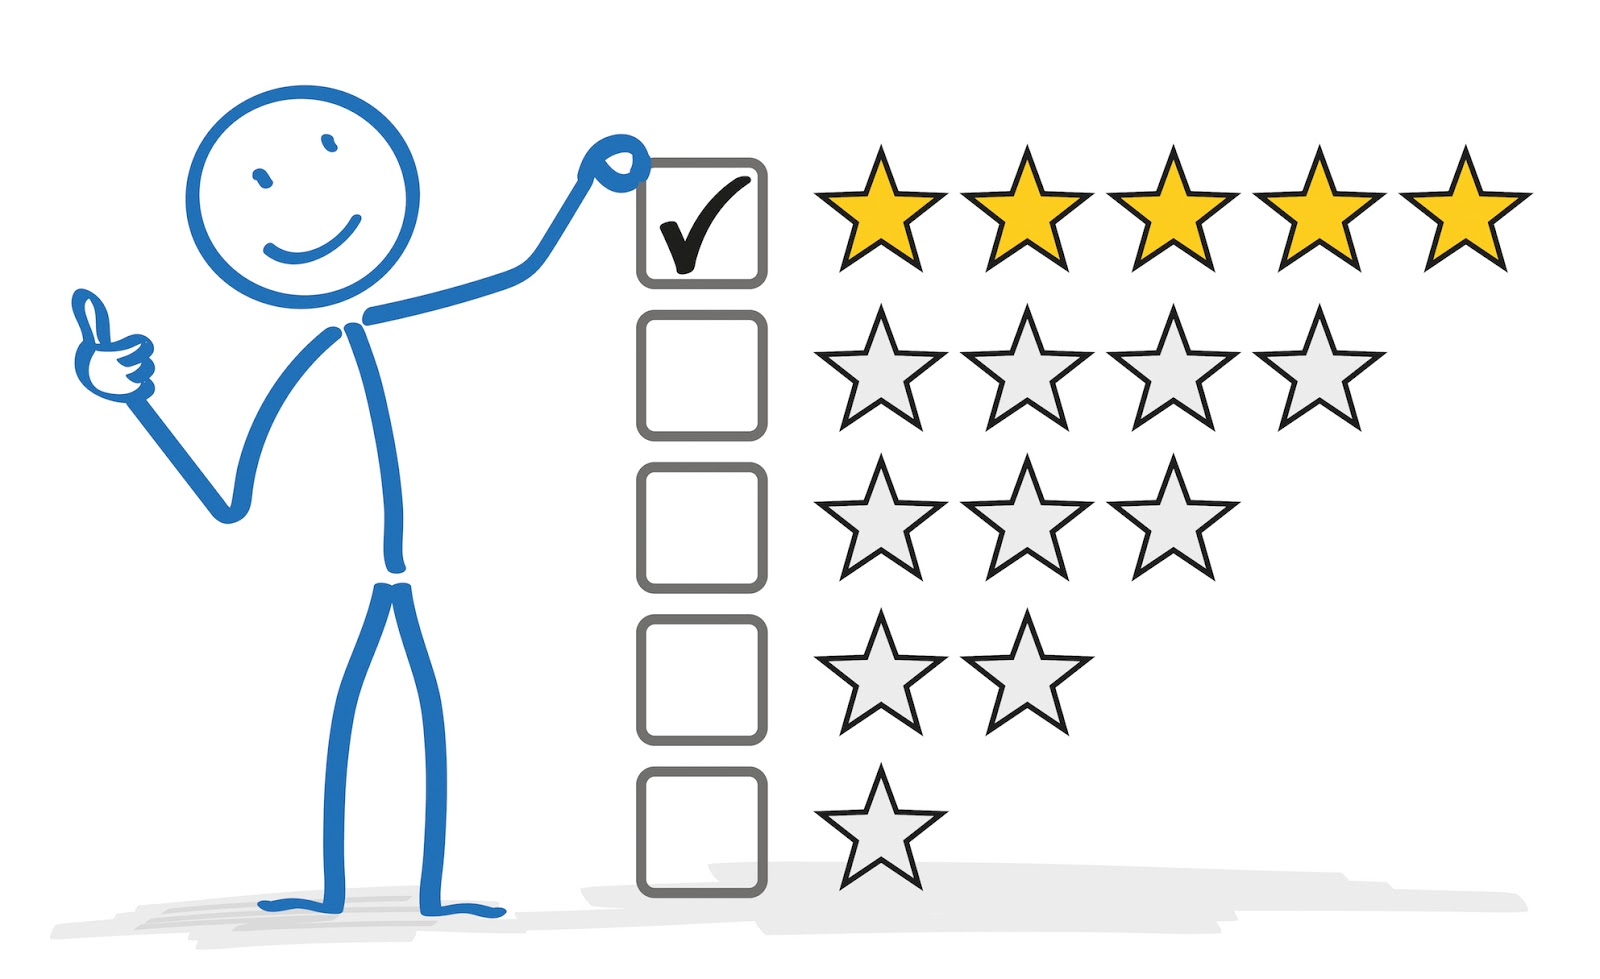 ... And Iu0027ll Say It Again, Some Of The Most Valuable And Credible  Information About The Sliding Door Company Comes From Their 5 Star Reviews.